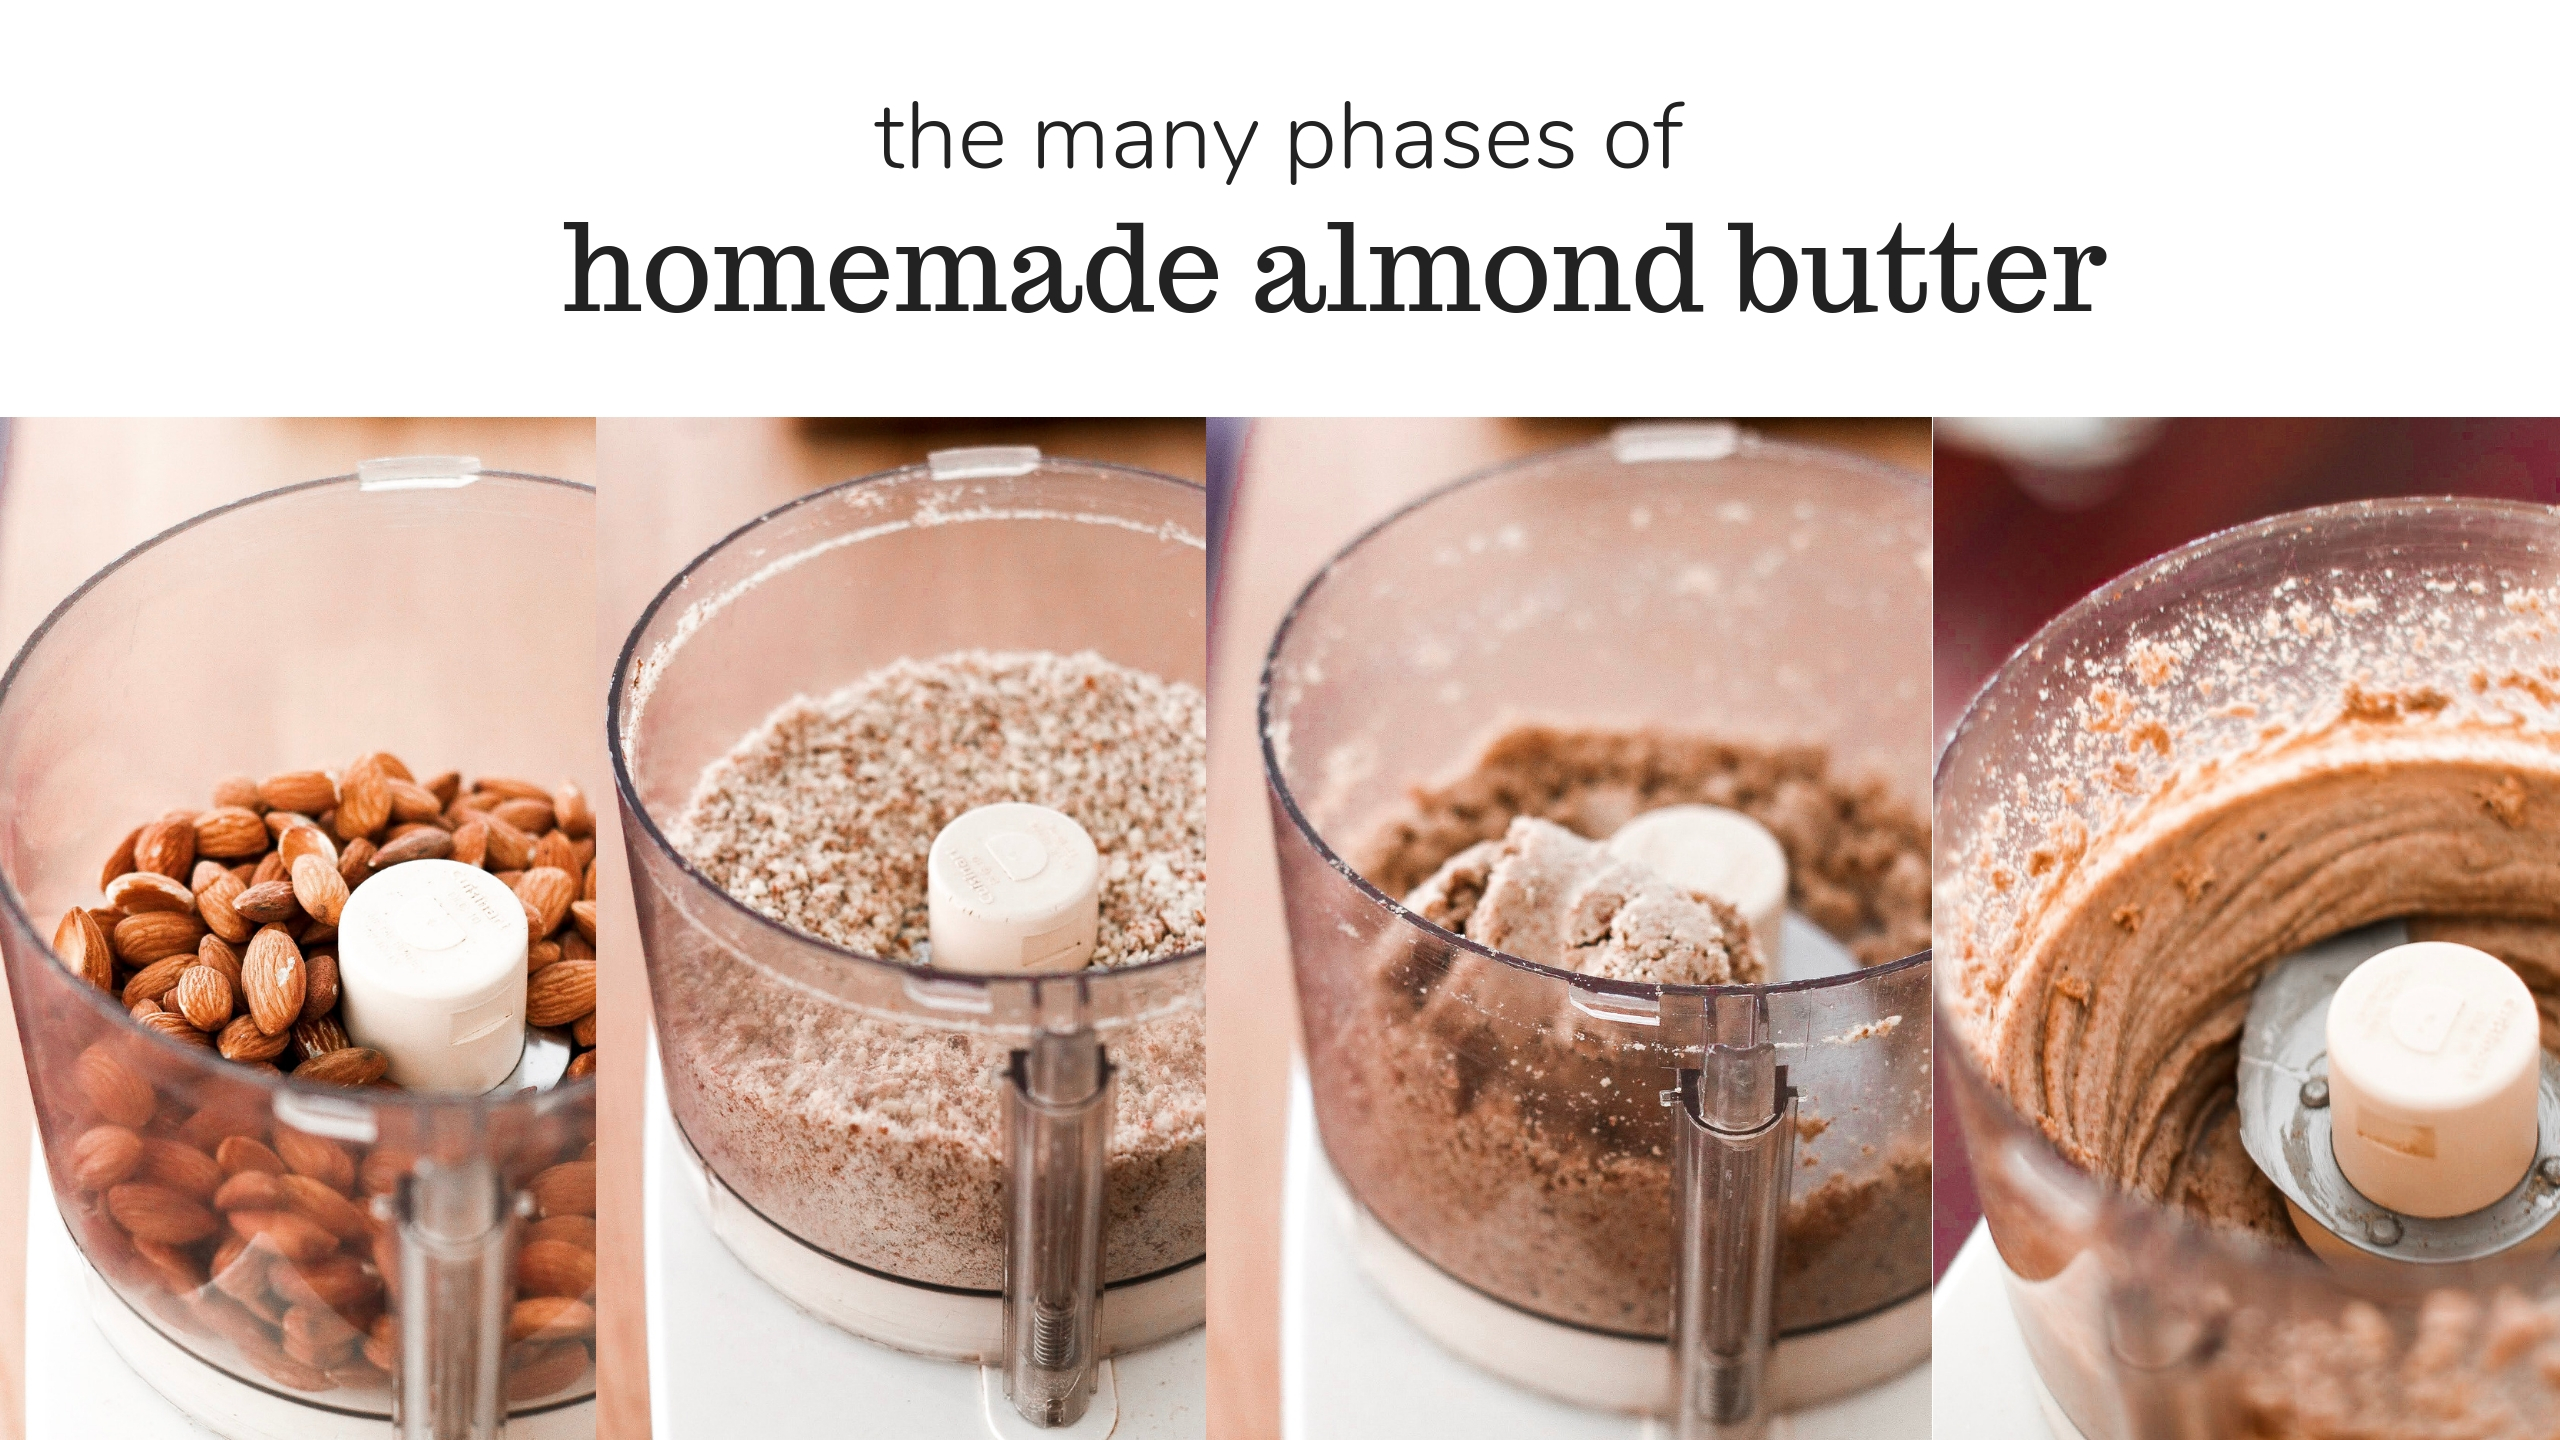 Almond_Butter_Phases